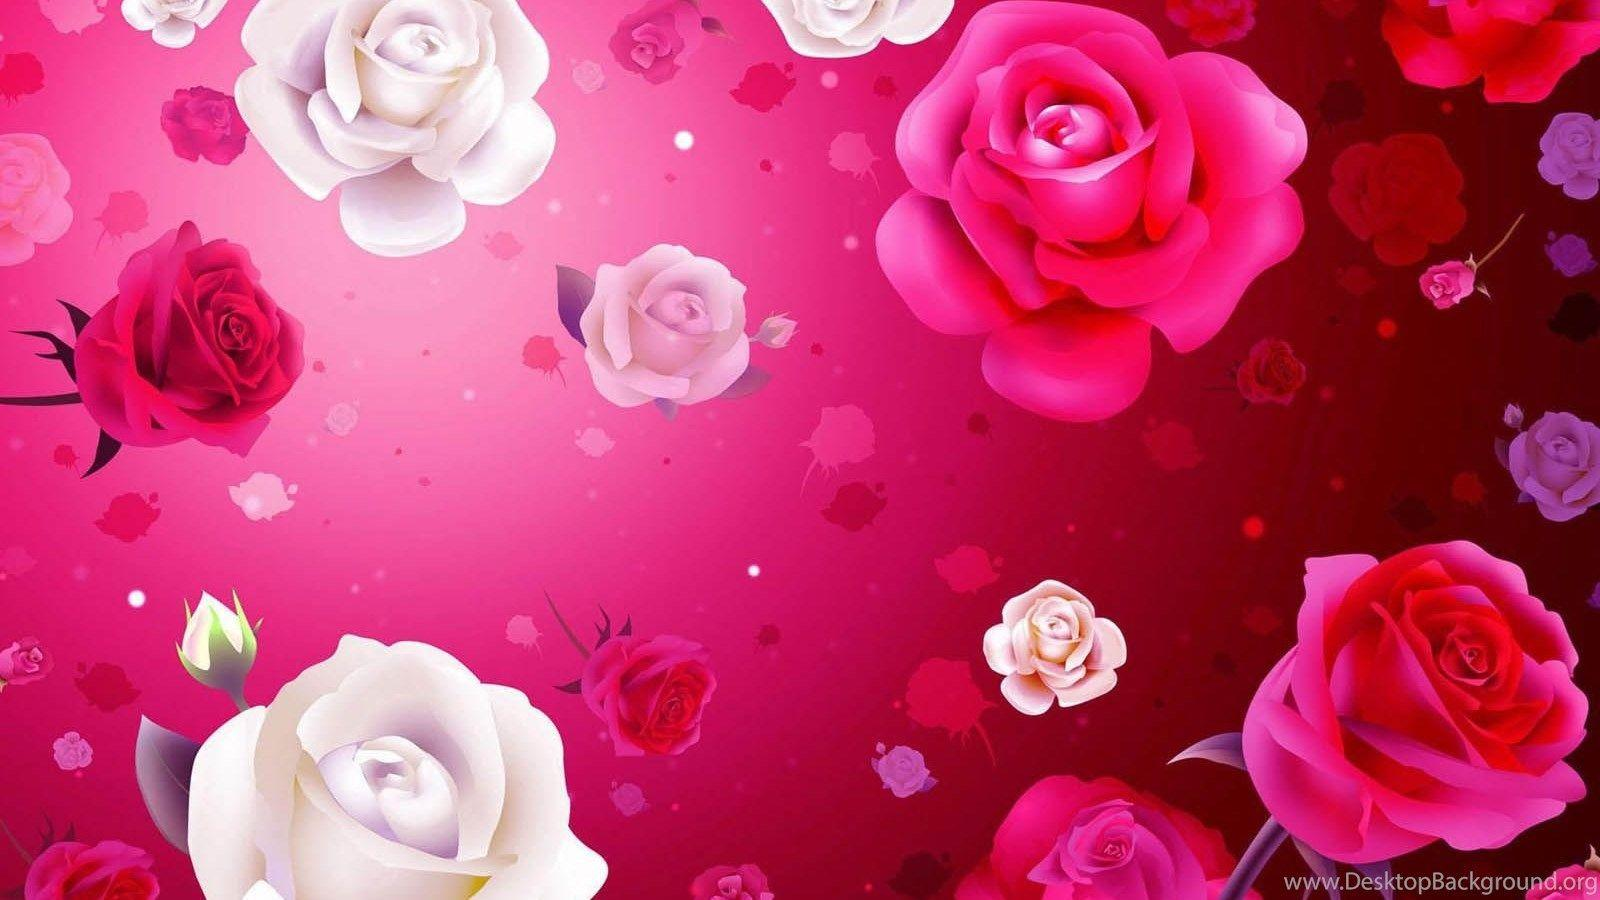 Valentine Day Rose Wallpapers – Valentine Week 2016 Desktop Background